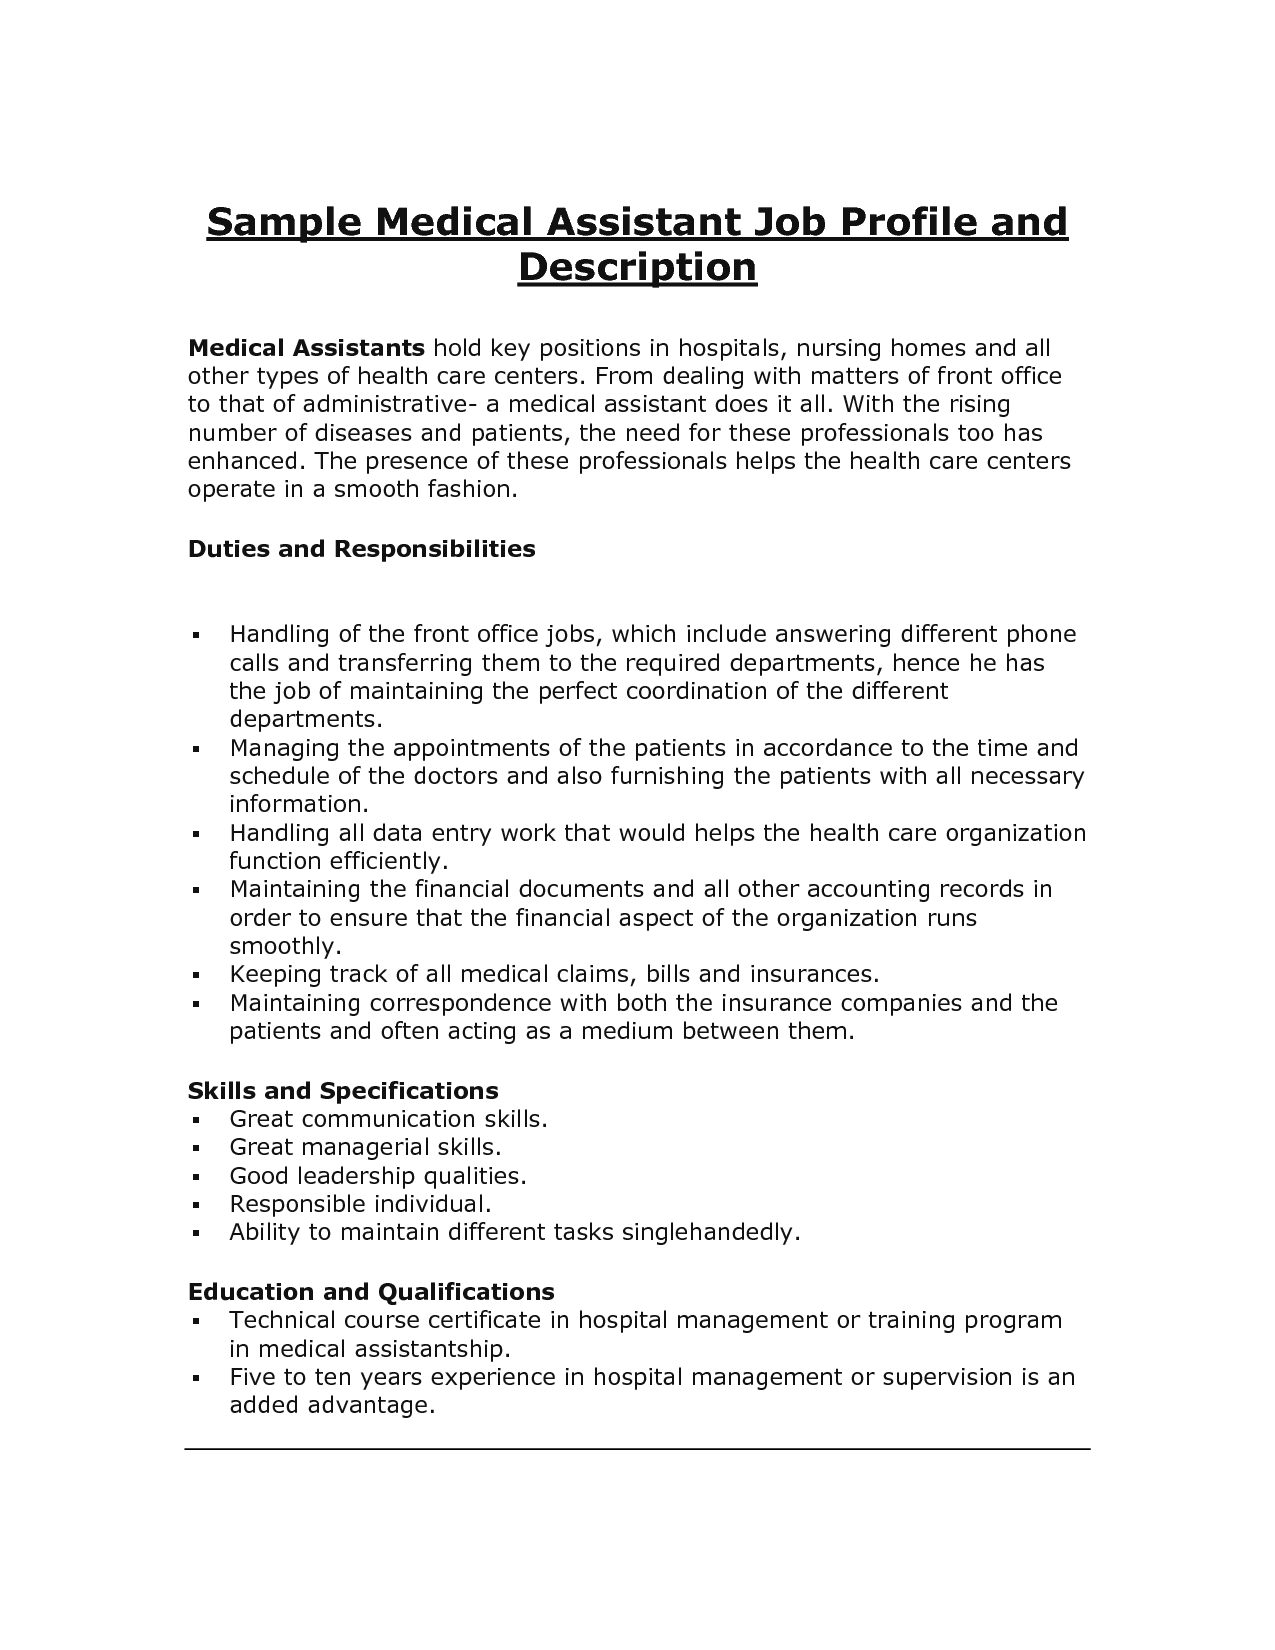 what are the job duties of a medical assistant